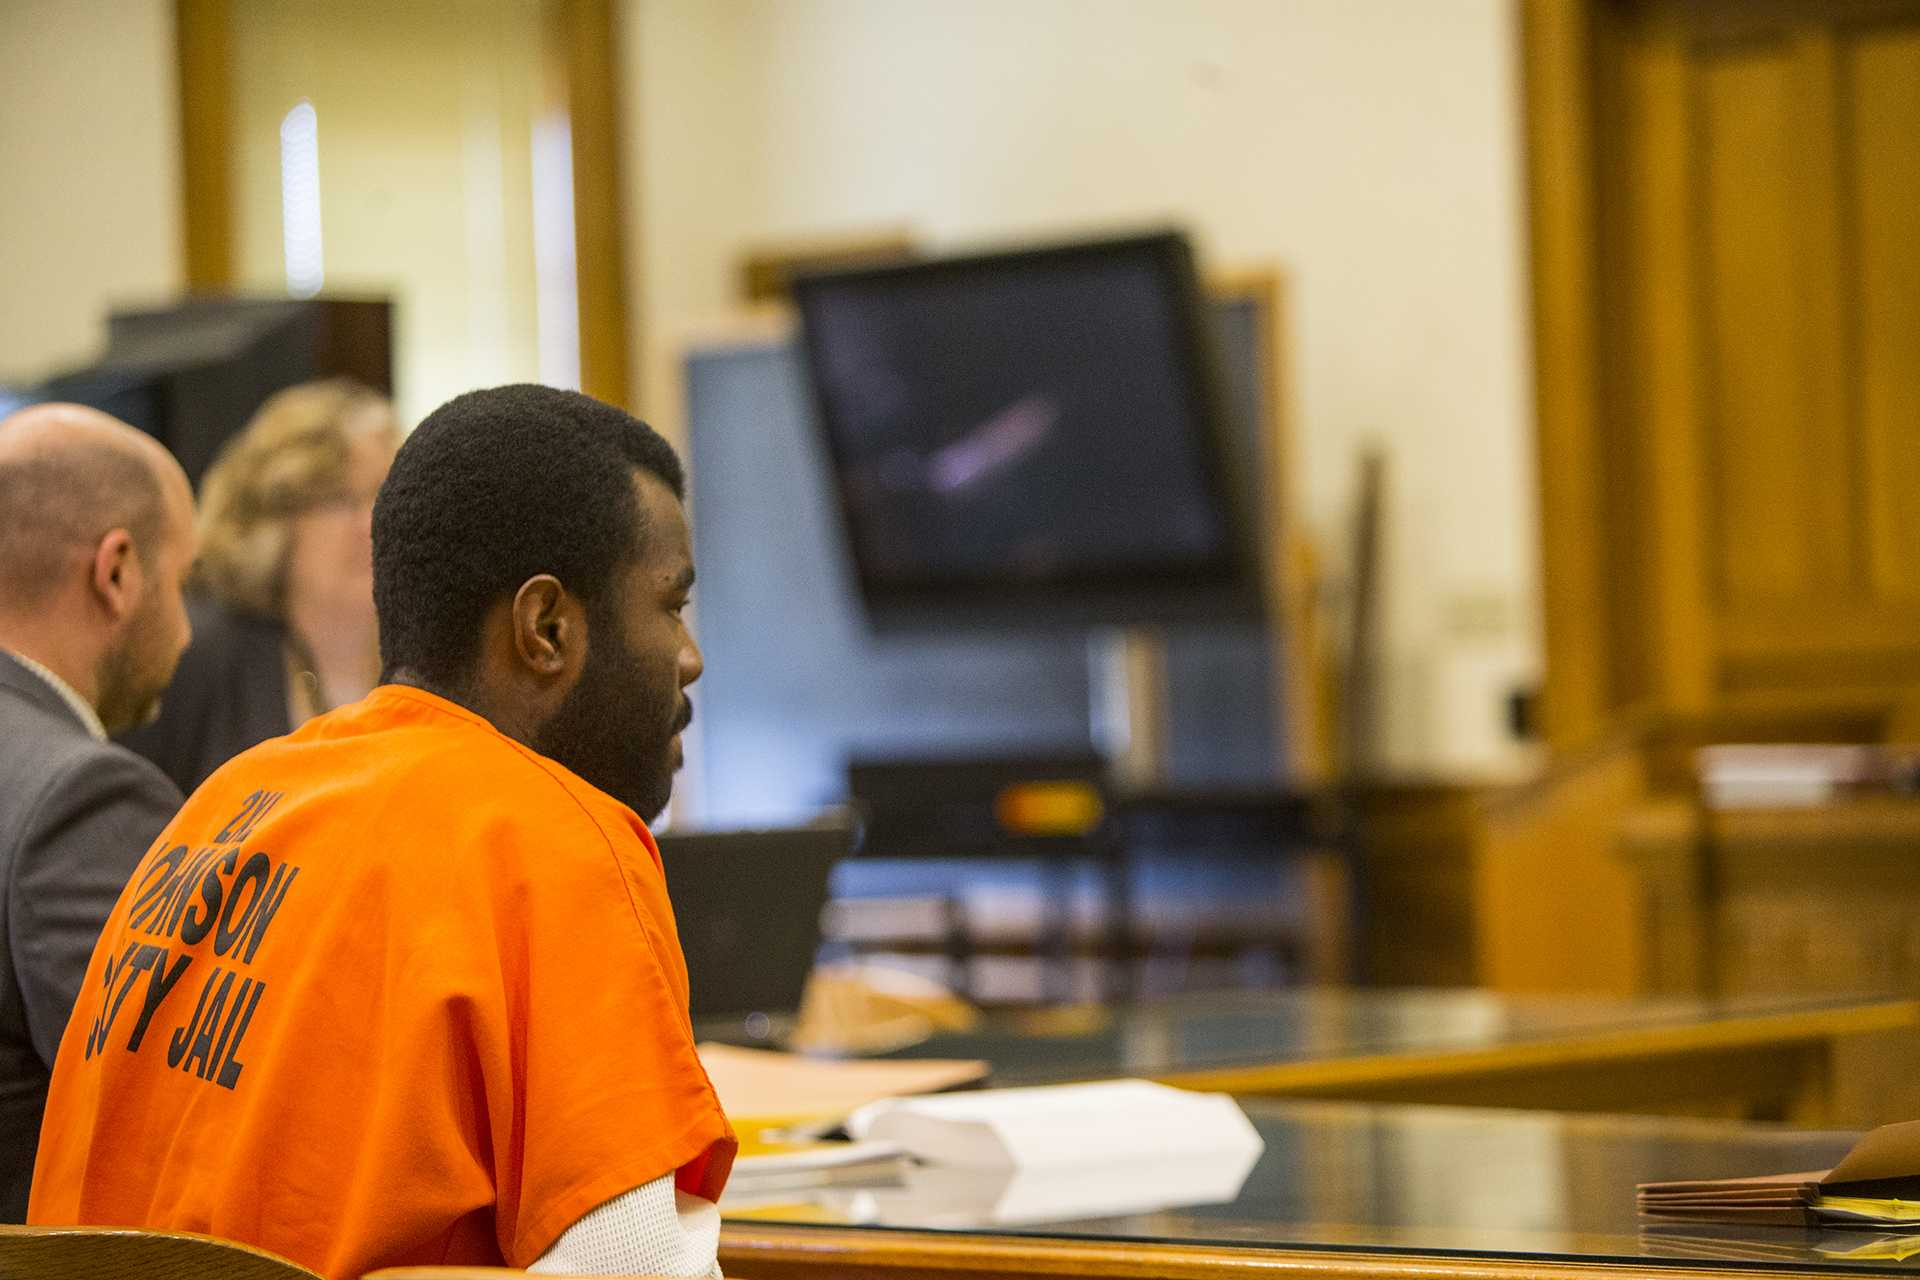 """Lamar Wilson of Iowa City sits in the court room during a case management hearing for Lamar Wilson vs. Johnson County in the Johnson County courthouse on Friday, Oct. 27, 2017. Wilson's lawyers asked the judge to dismiss charges against him using Iowa's """"stand your ground"""" defense. (Joseph Cress/The Daily Iowan)"""